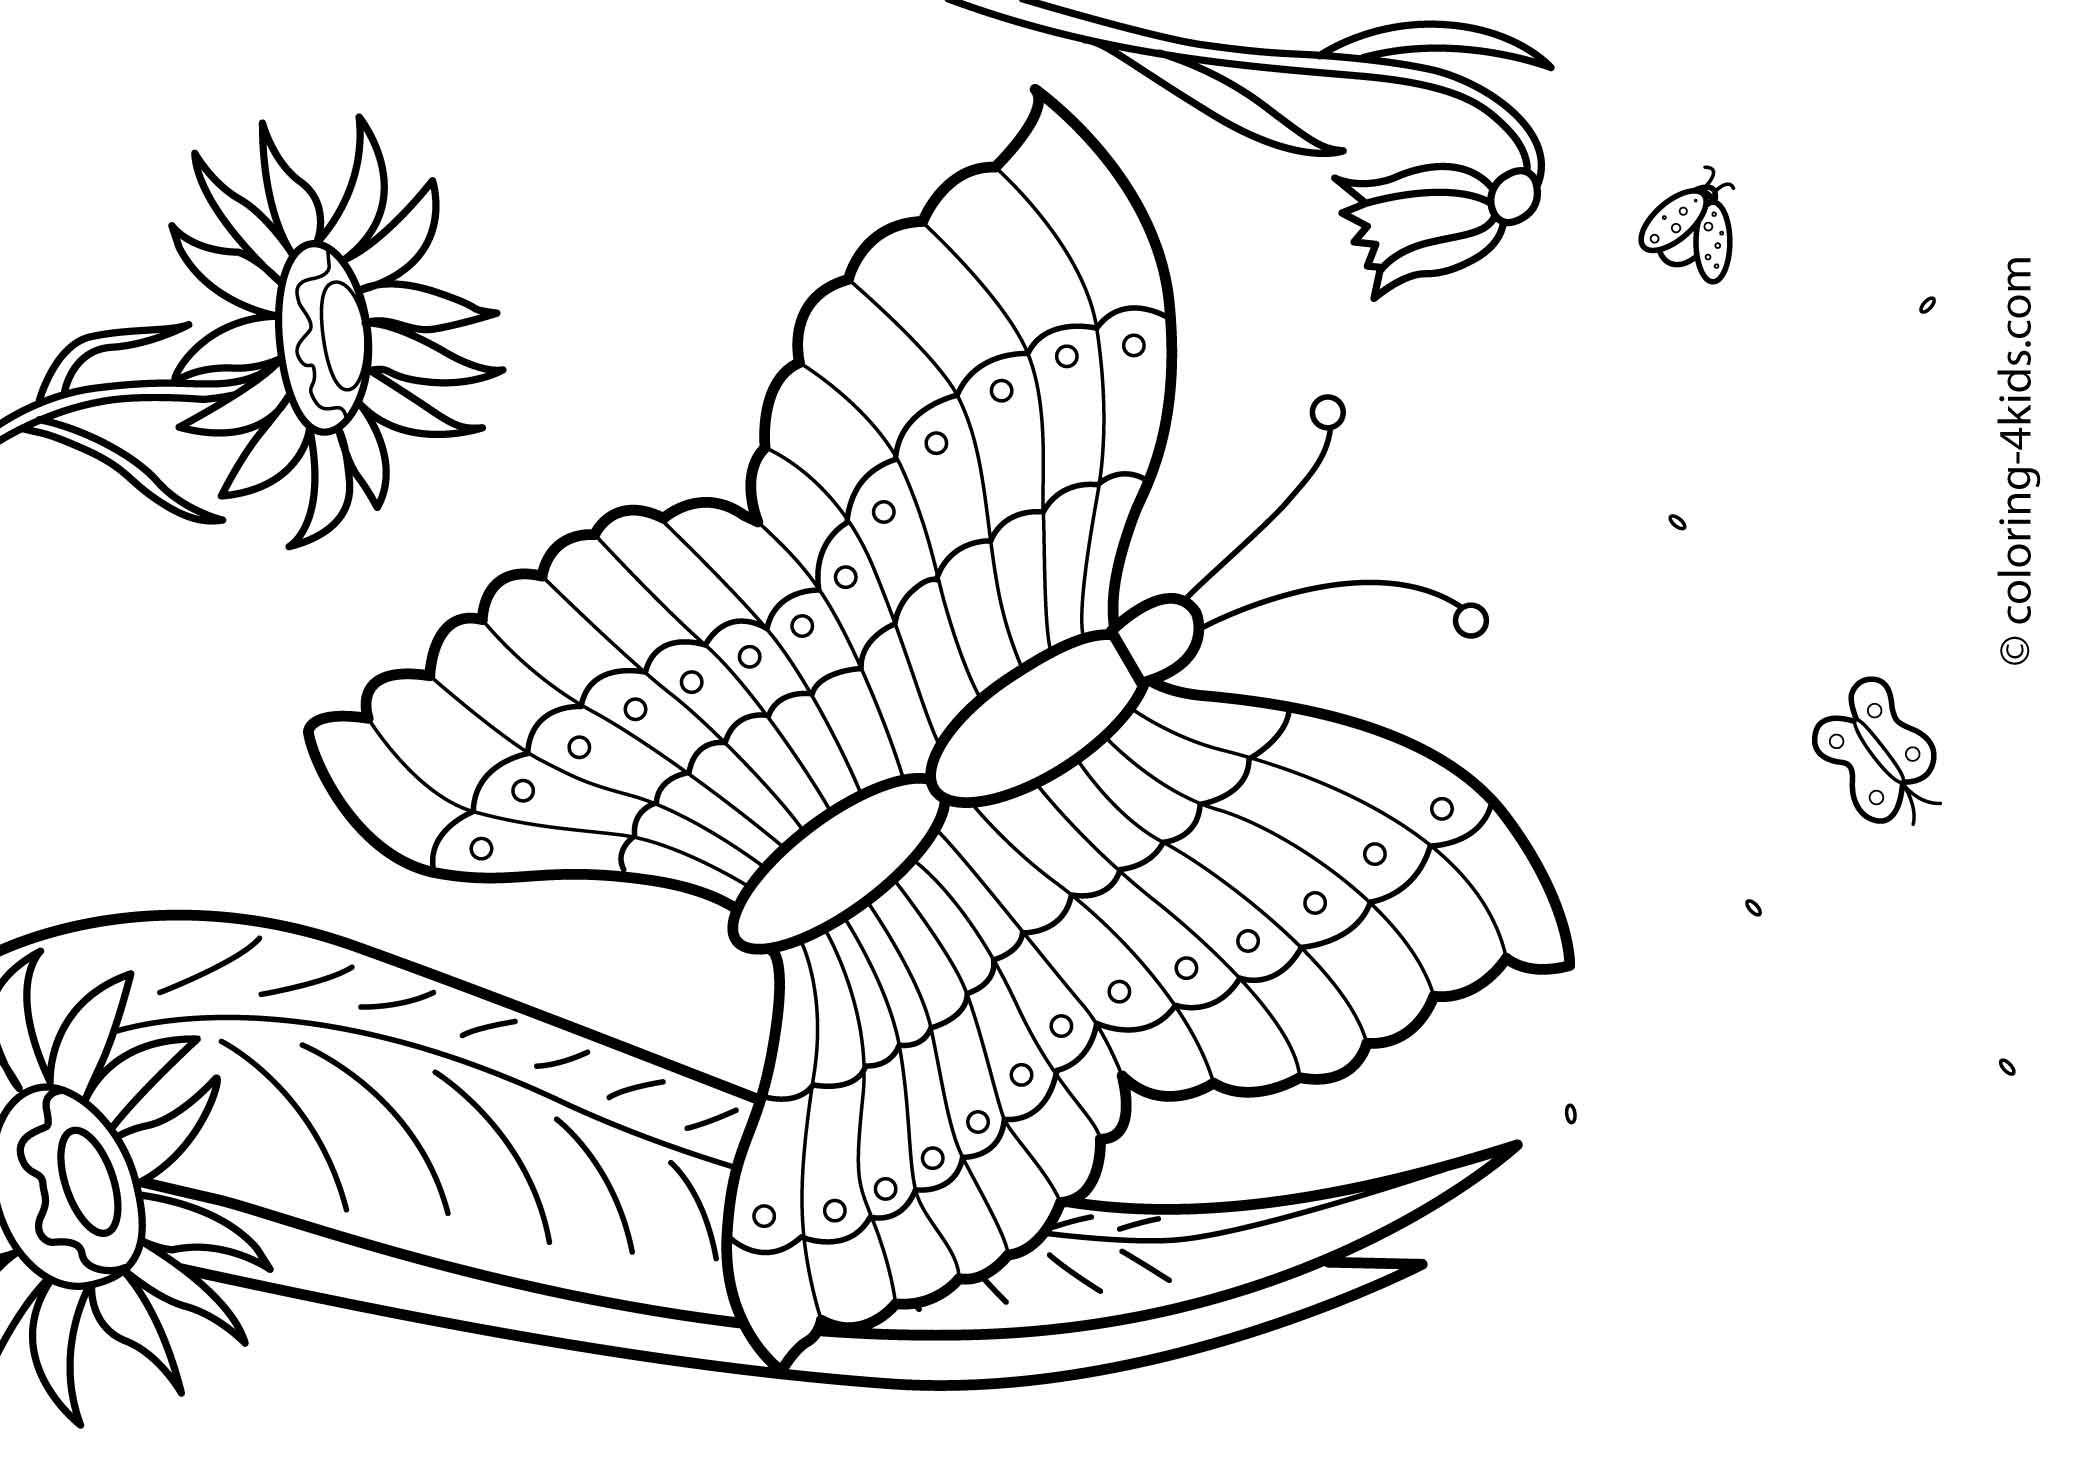 Butterfly Summer Coloring Pages For Kids Free Printable